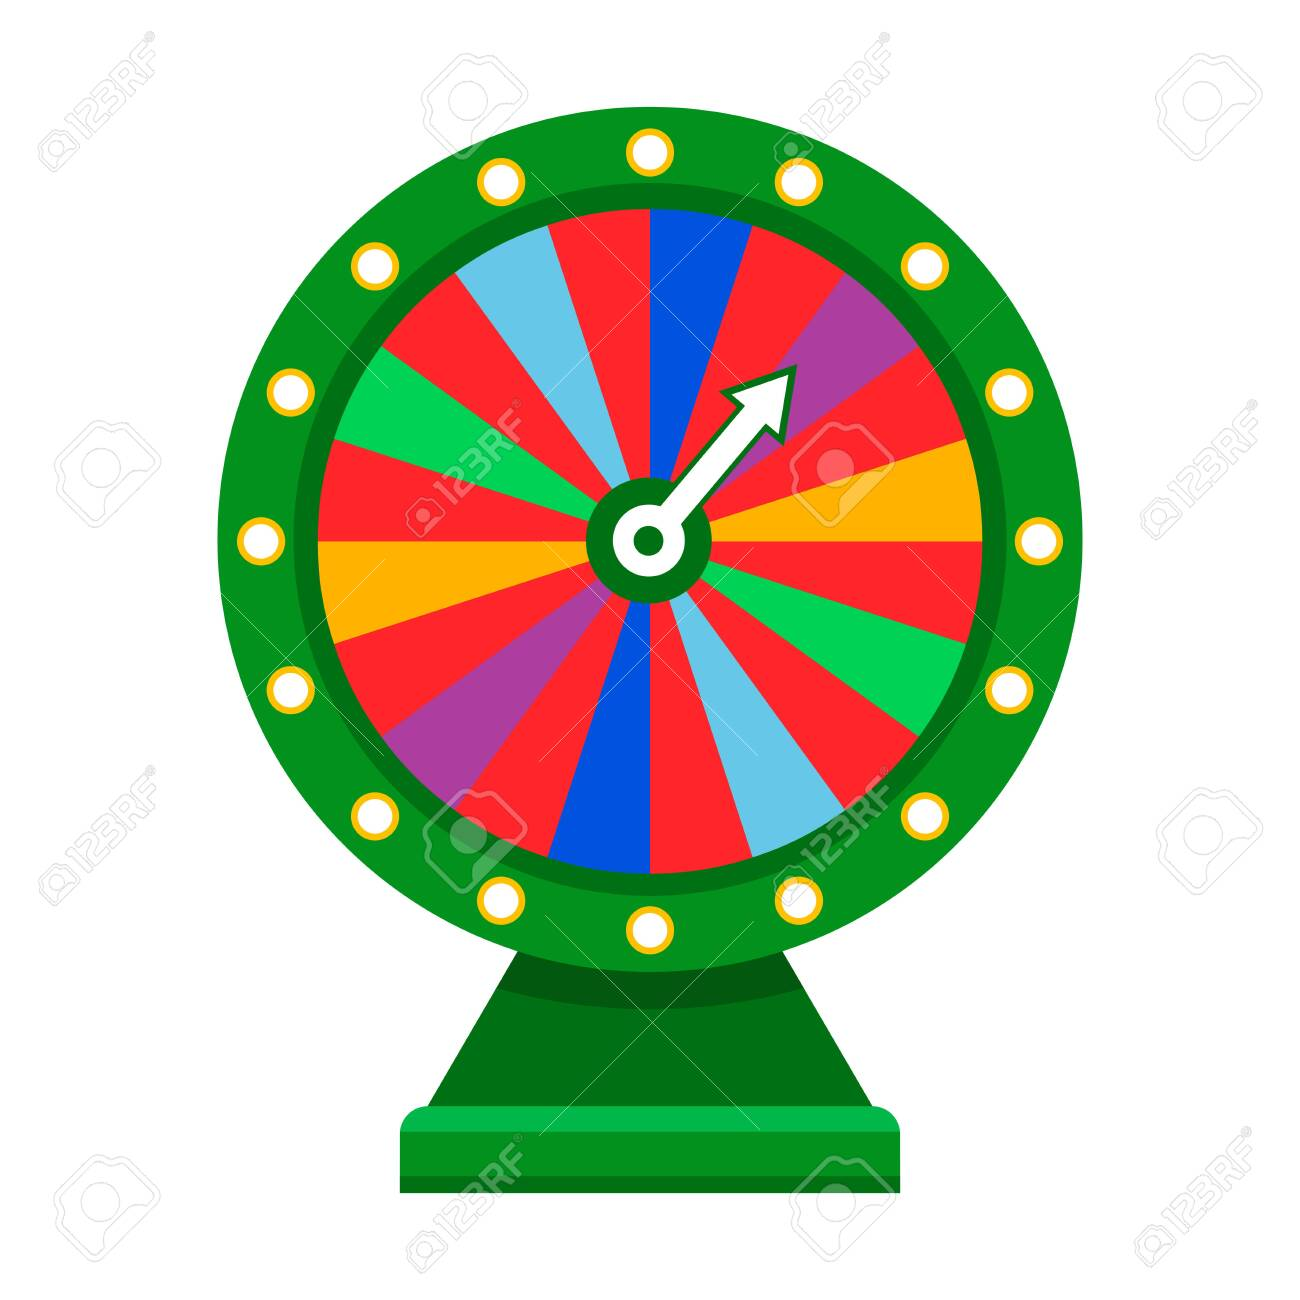 Cartoon wheel fortune lottery design element. Spinning lucky fortune isolated on white. Vector illustration - 141032660